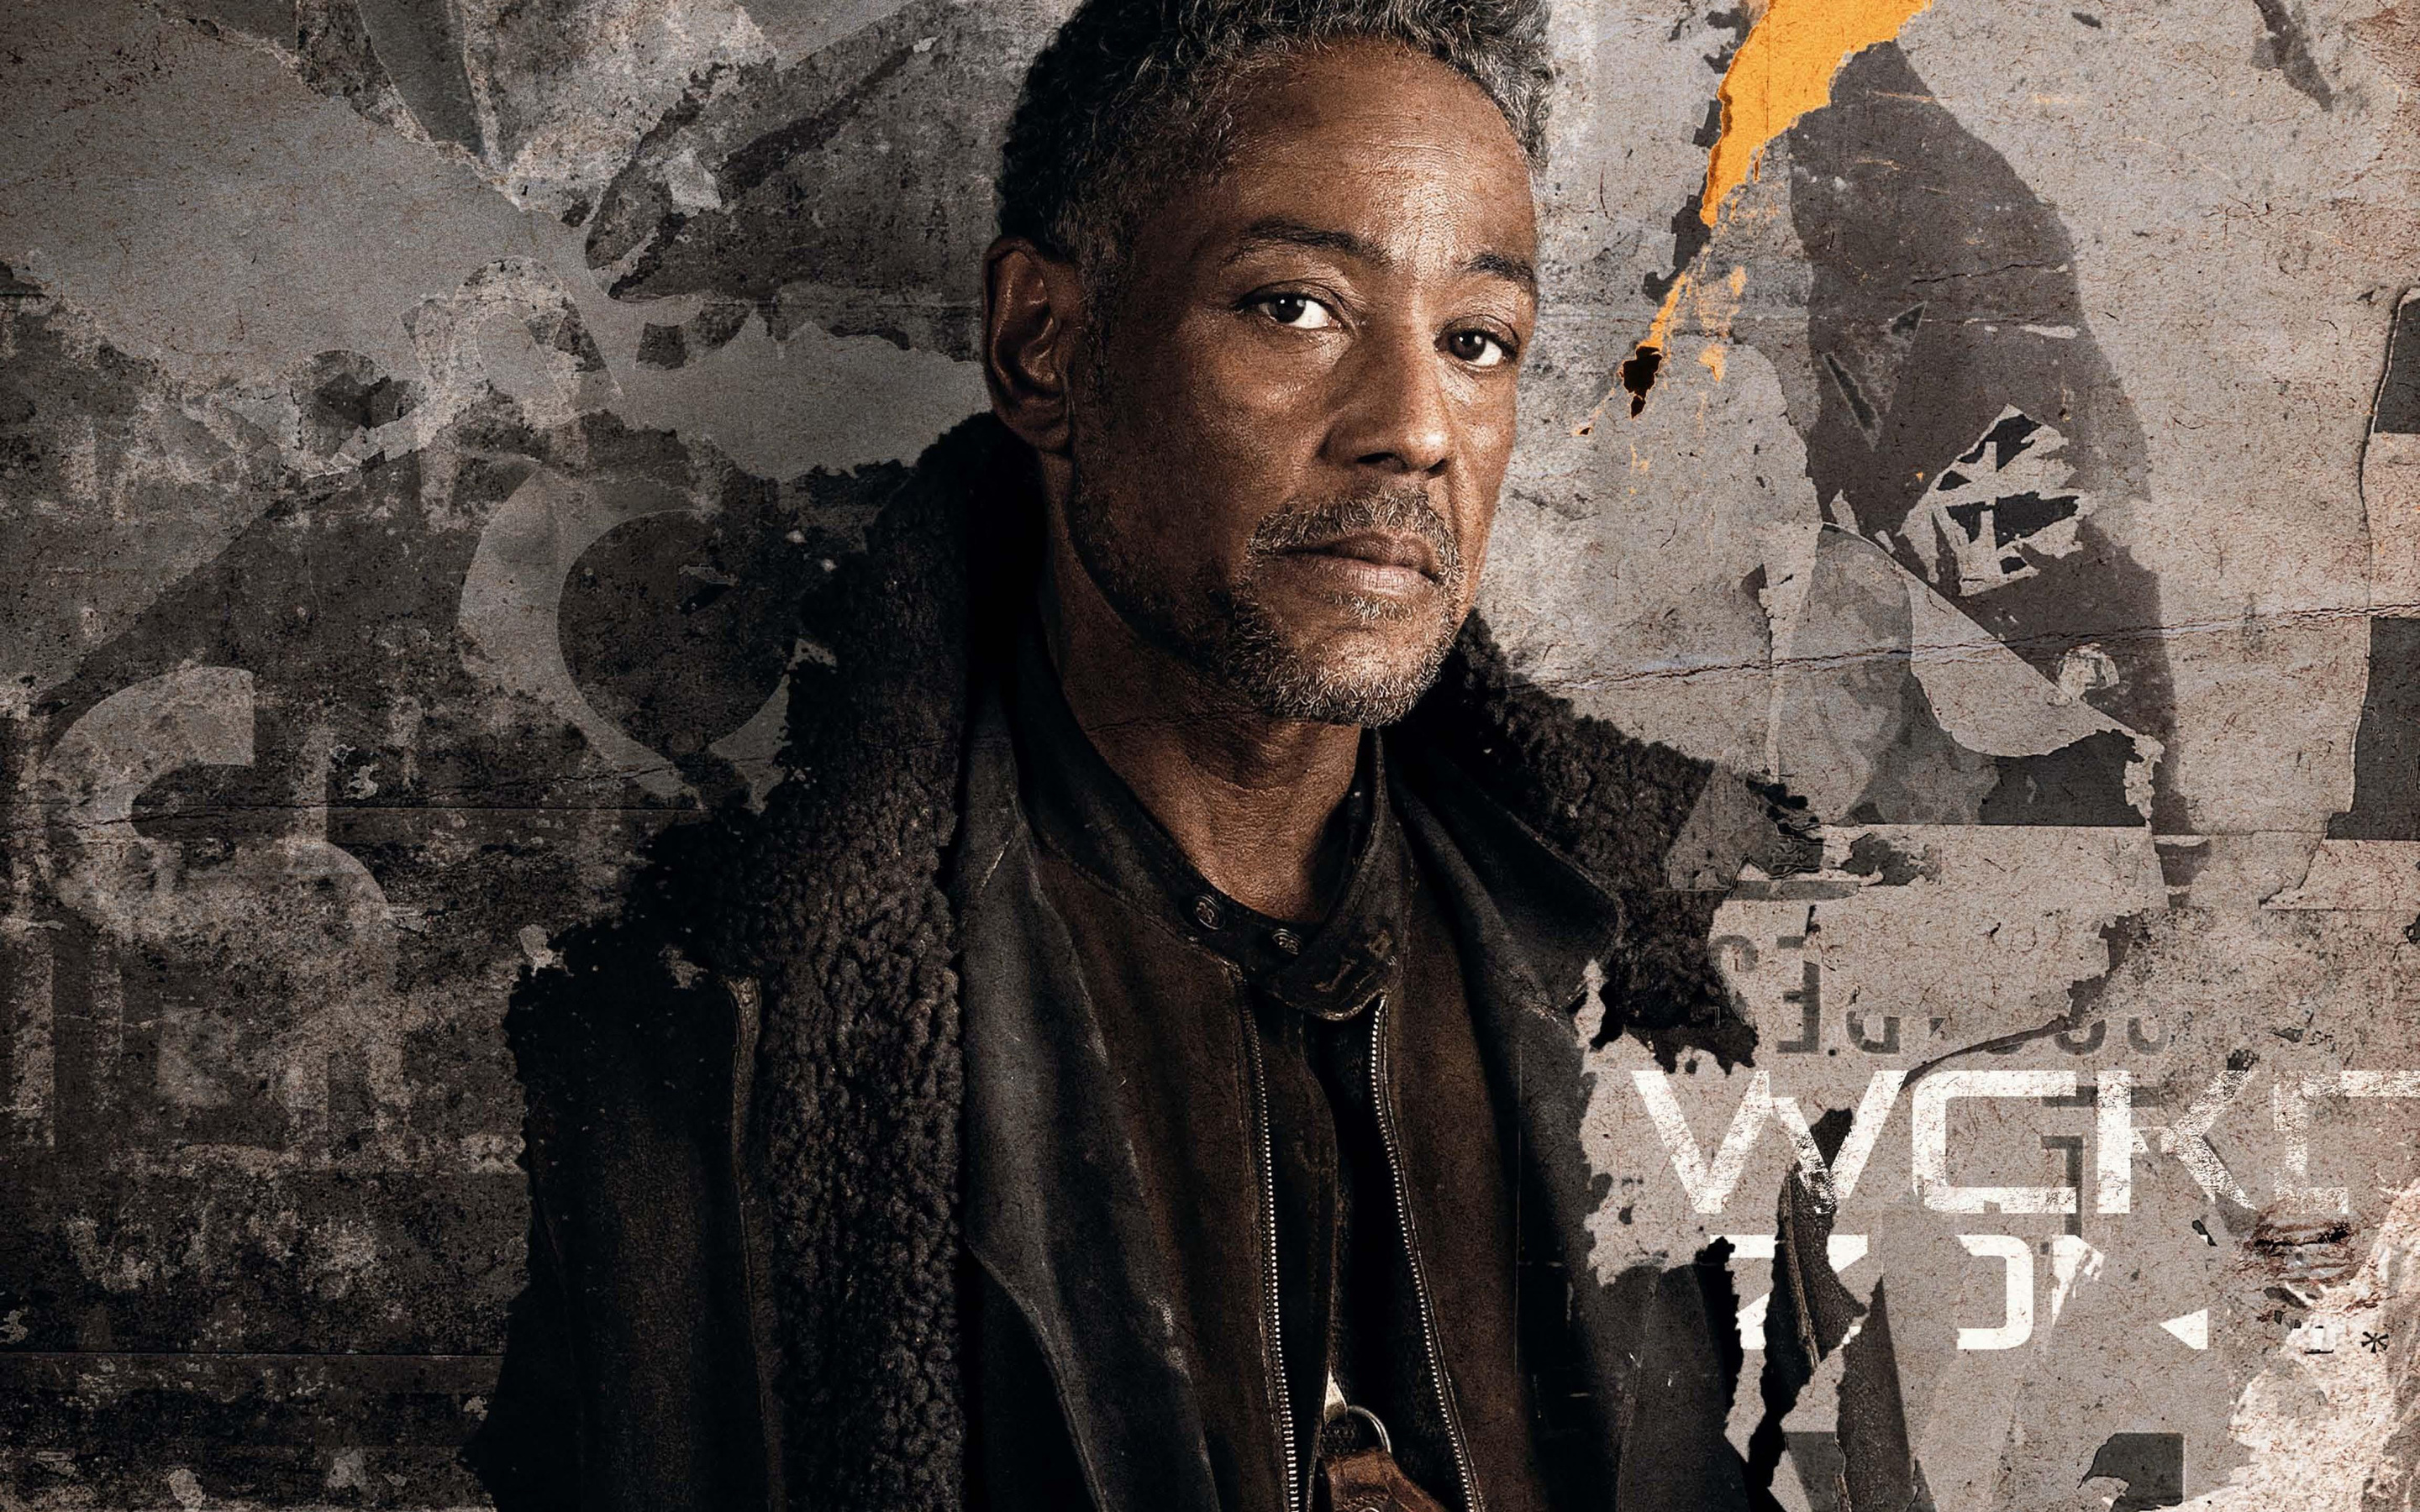 giancarlo-esposito-in-maze-runner-the-death-cure-2018-vb.jpg